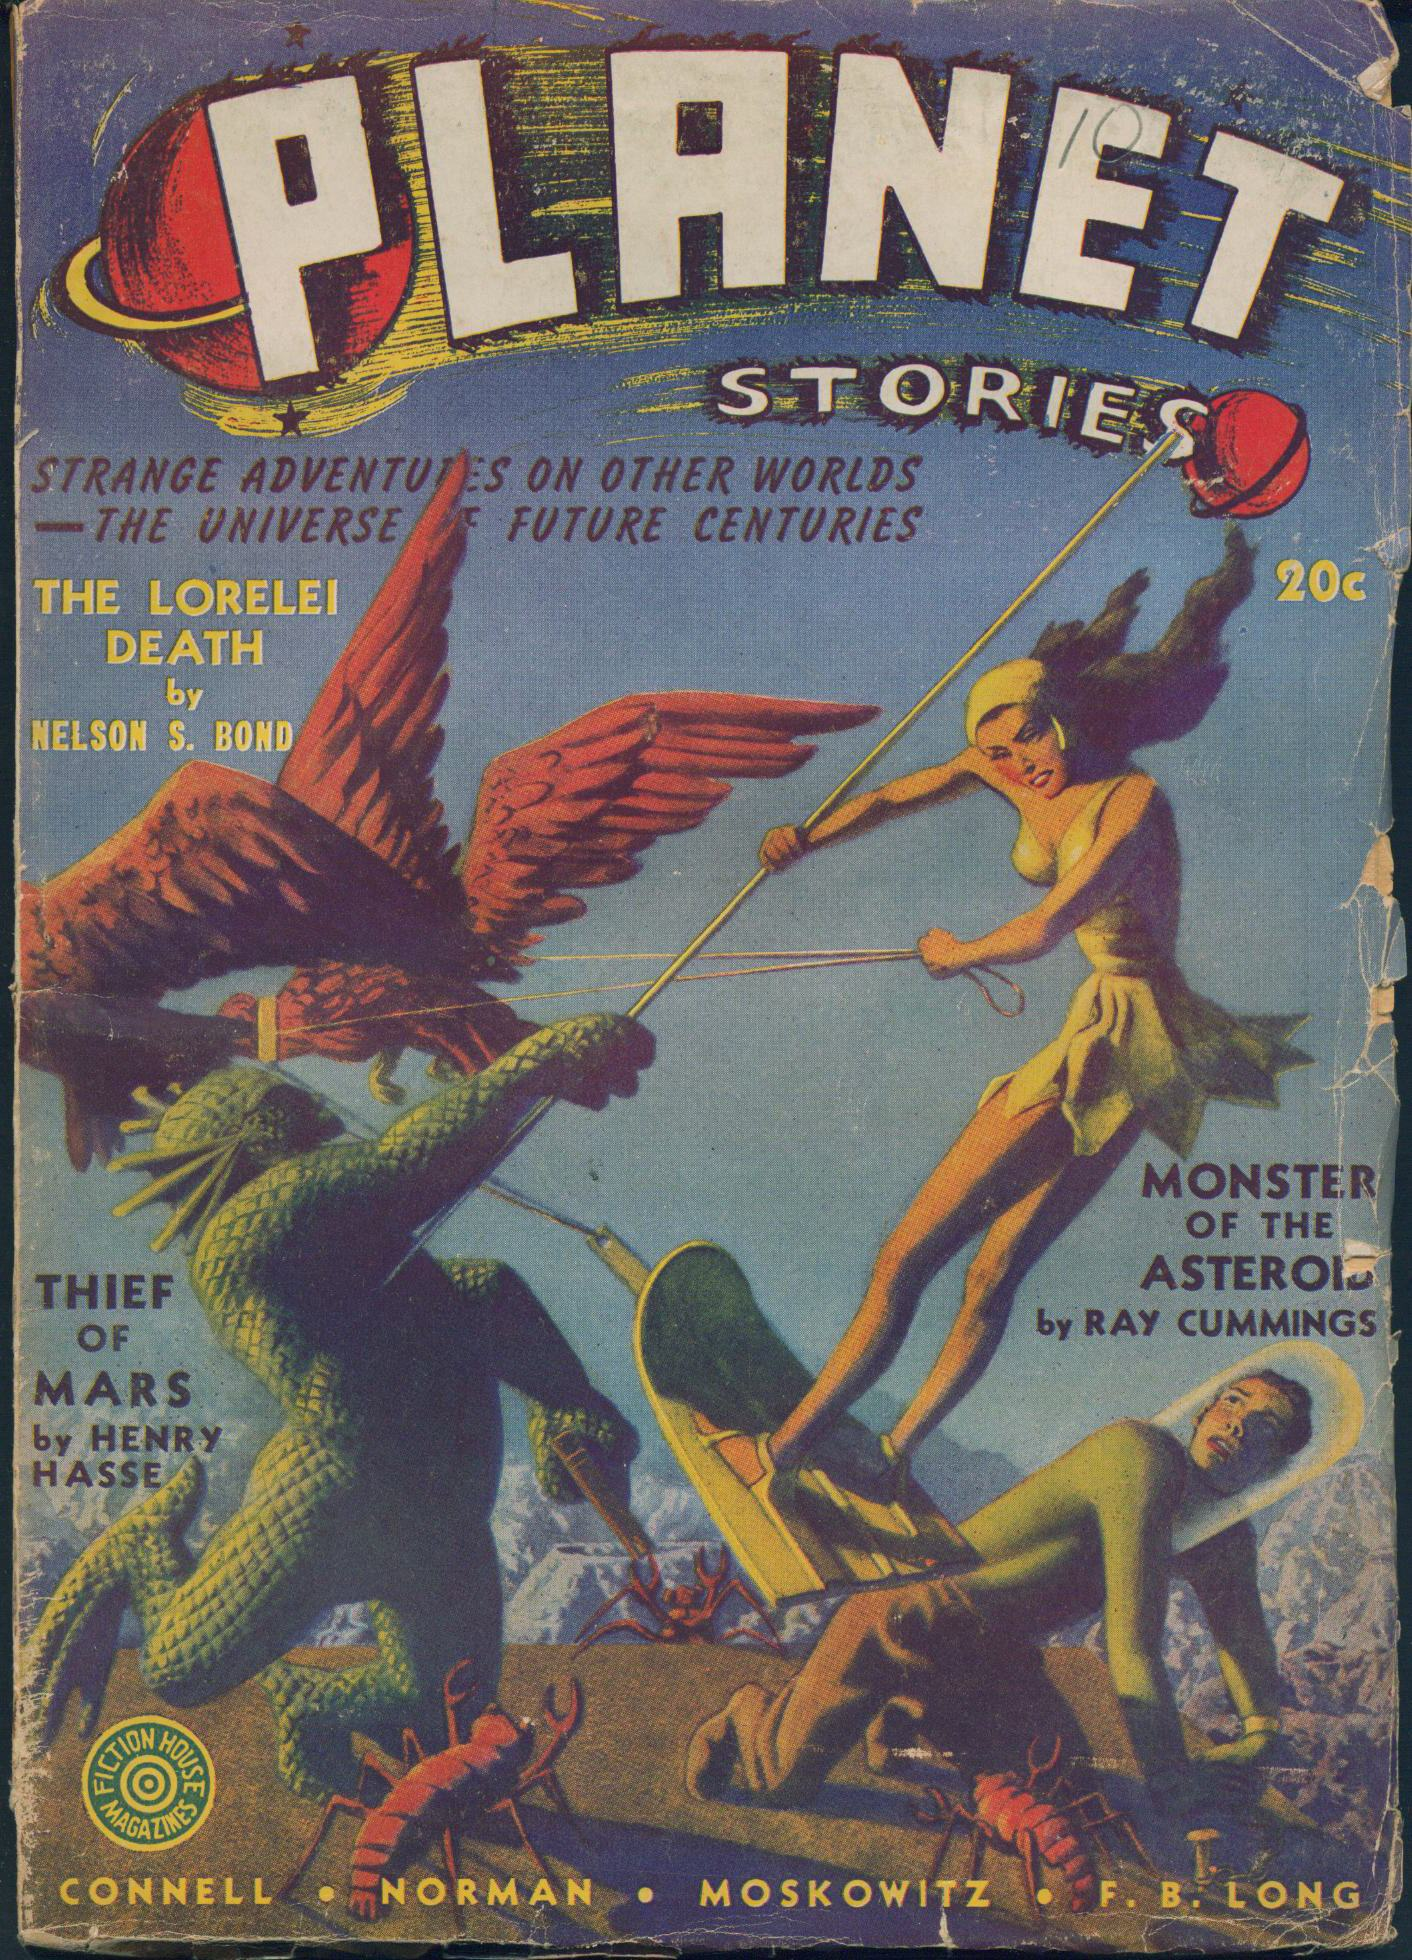 Cover of Planet Stories, vol 1 no 9, shows a woman fighting off several alien creatures, including one resembling a bird and another with green scales.